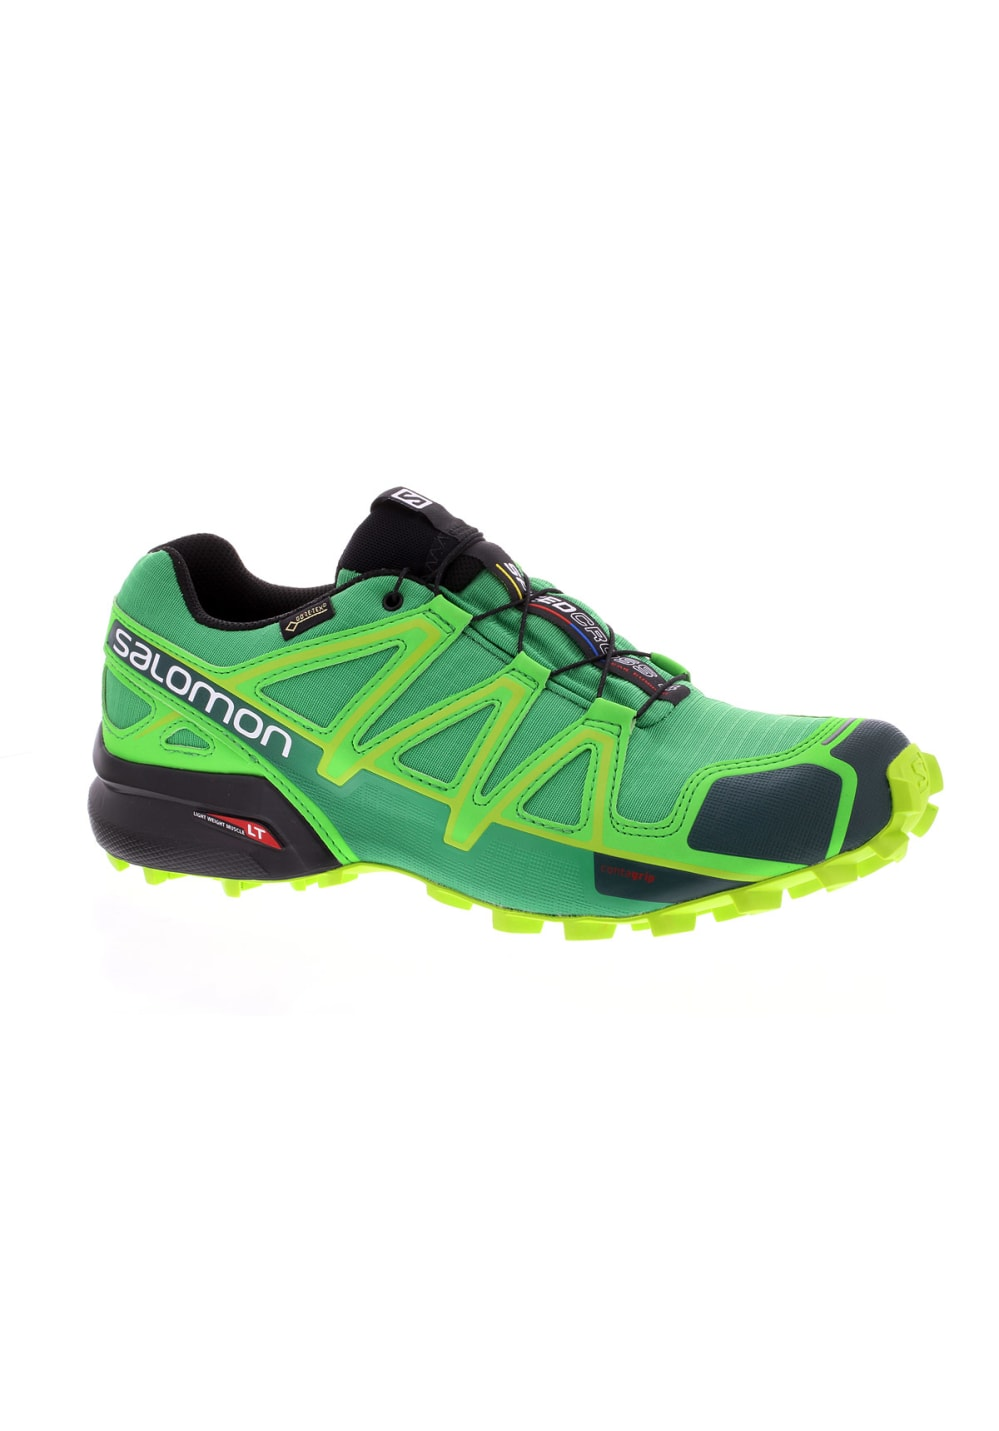 773abfb60a8782 Salomon Speedcross 4 GTX - Running shoes for Men - Green | 21RUN